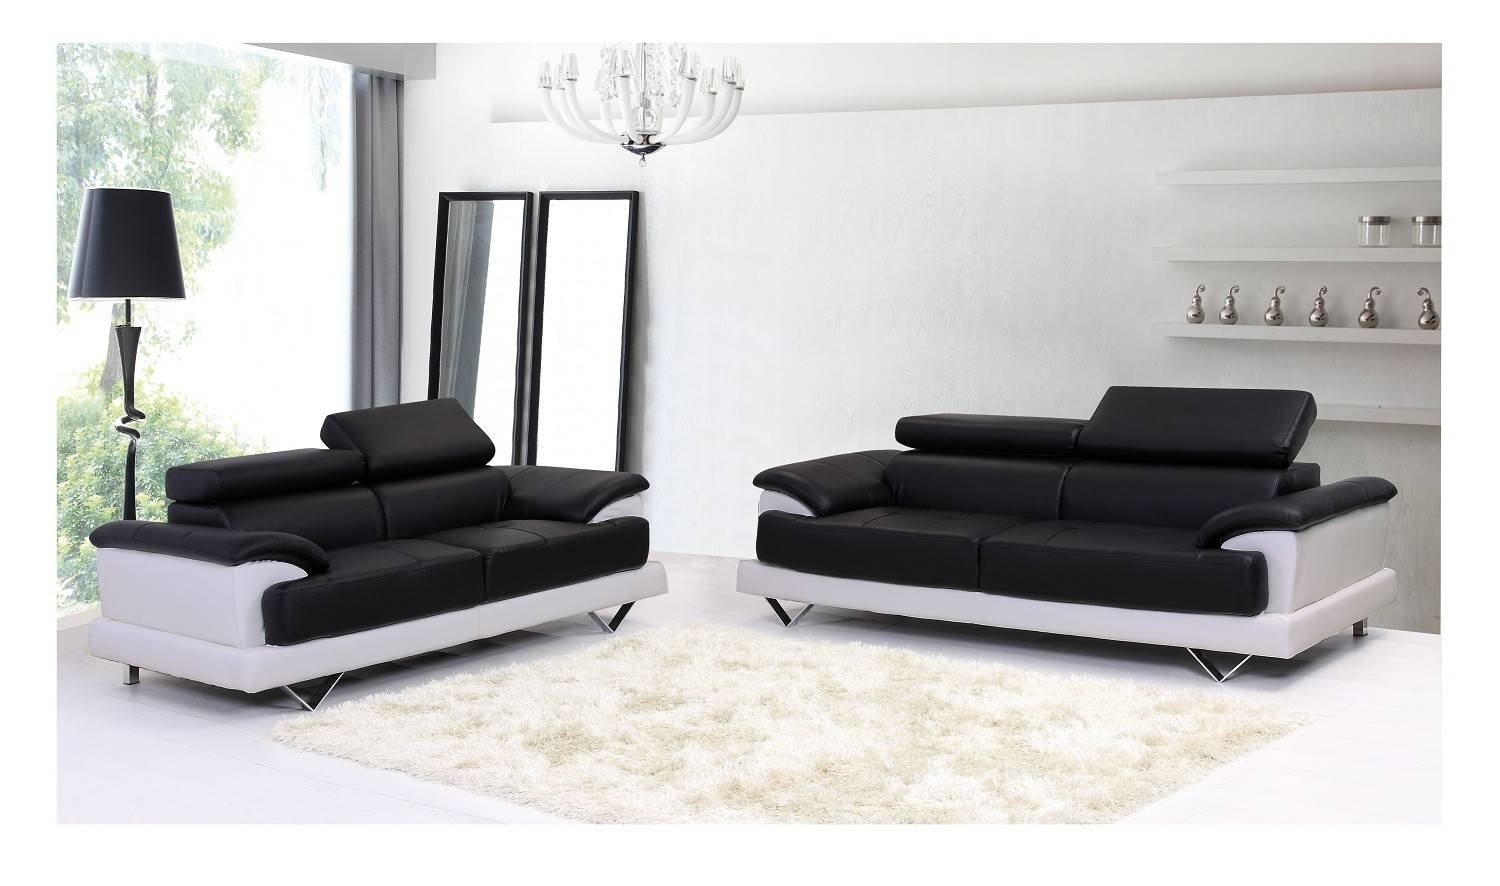 Sofas Center : Dreaded Black And White Sofa Photos Inspirations intended for Black and White Sofas (Image 23 of 30)